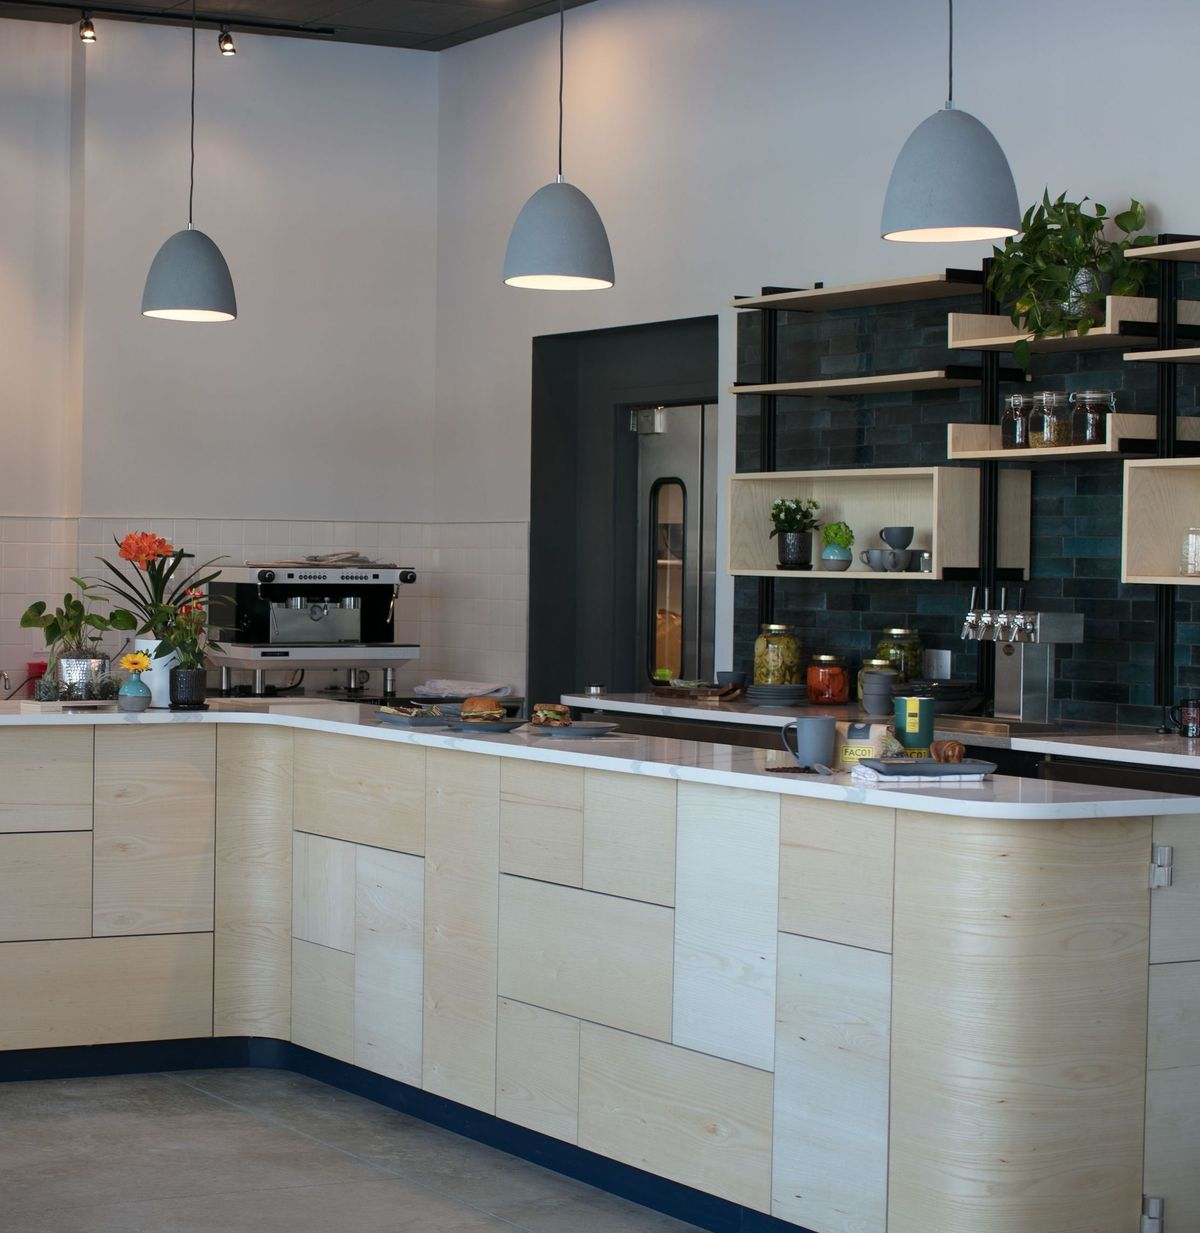 the interior coffee bar at the landing kitchen with three hanging pendant lights and a mismatched wood bar